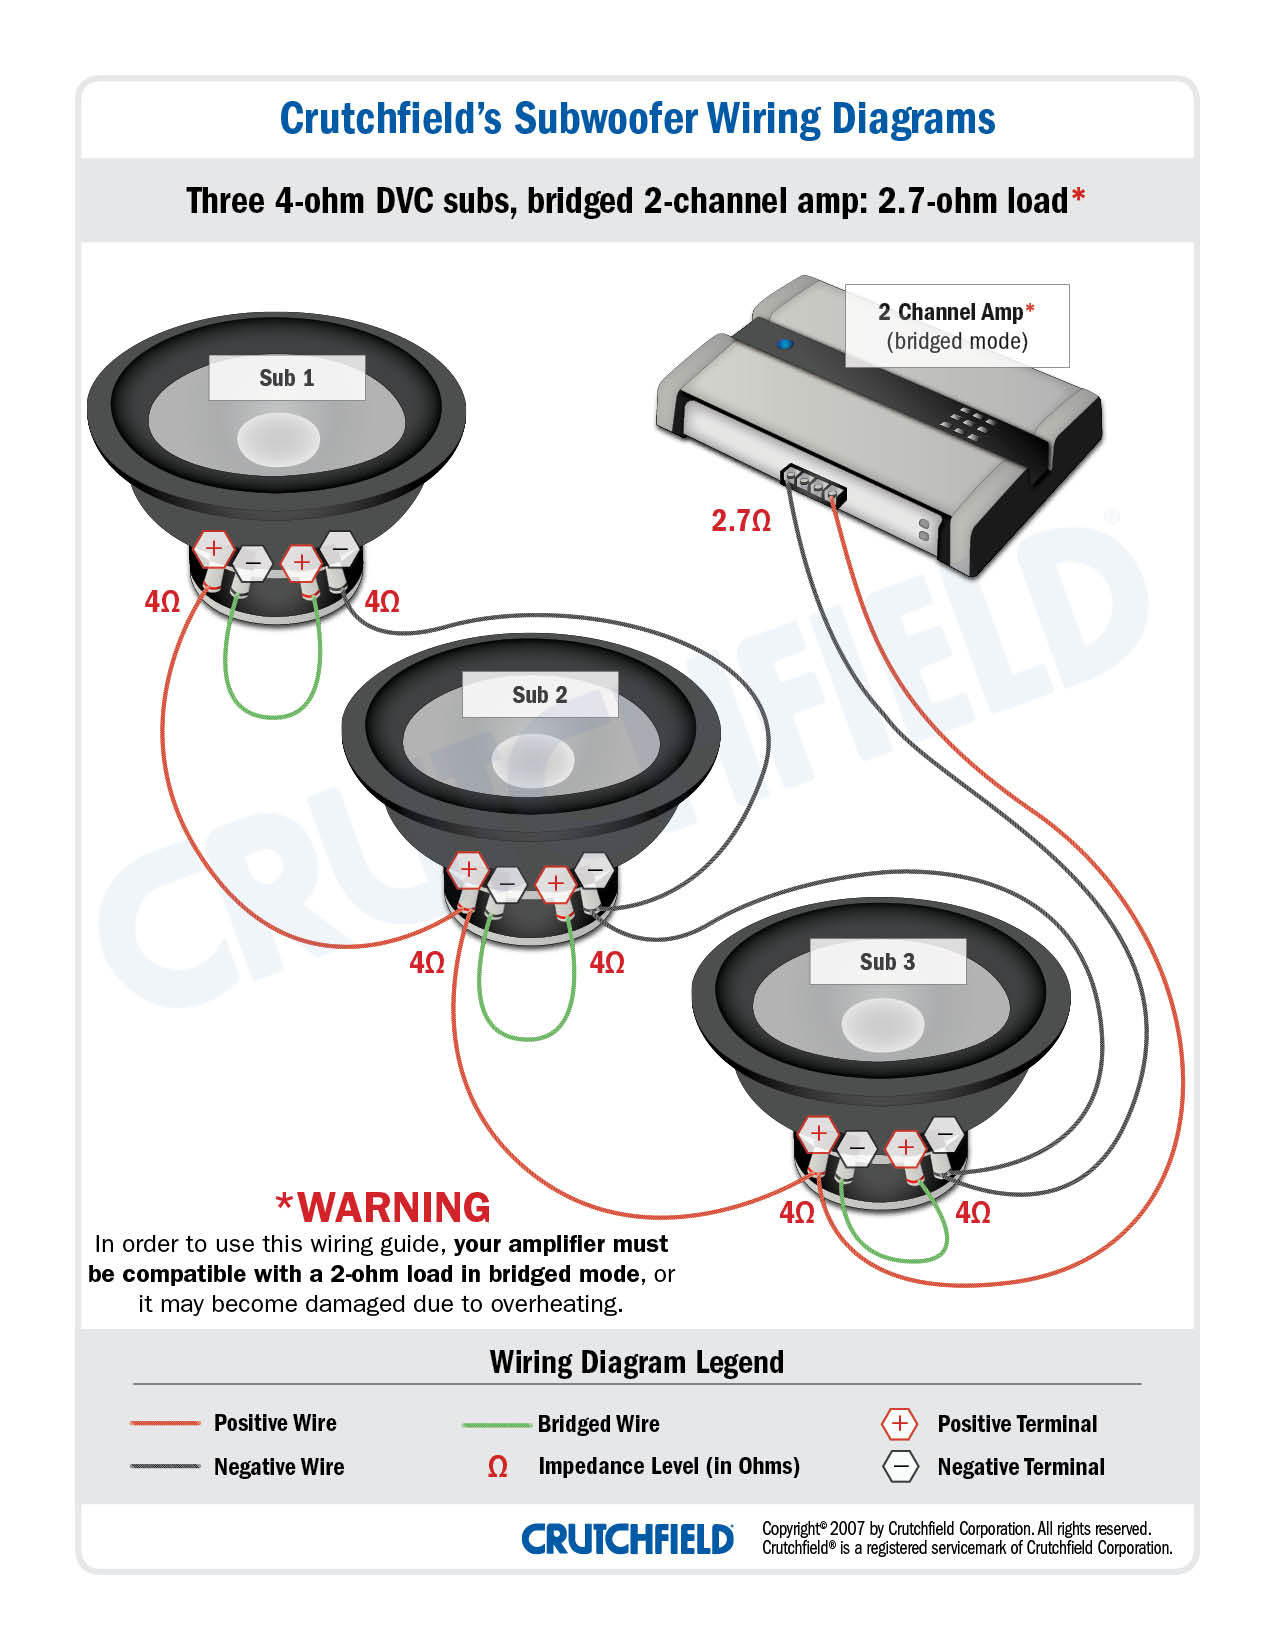 Crutchfield Sub Wiring Diagrams 3 Dvc 4 Ohm Crutchfield Wiring – 4 Ohm Wiring Diagram